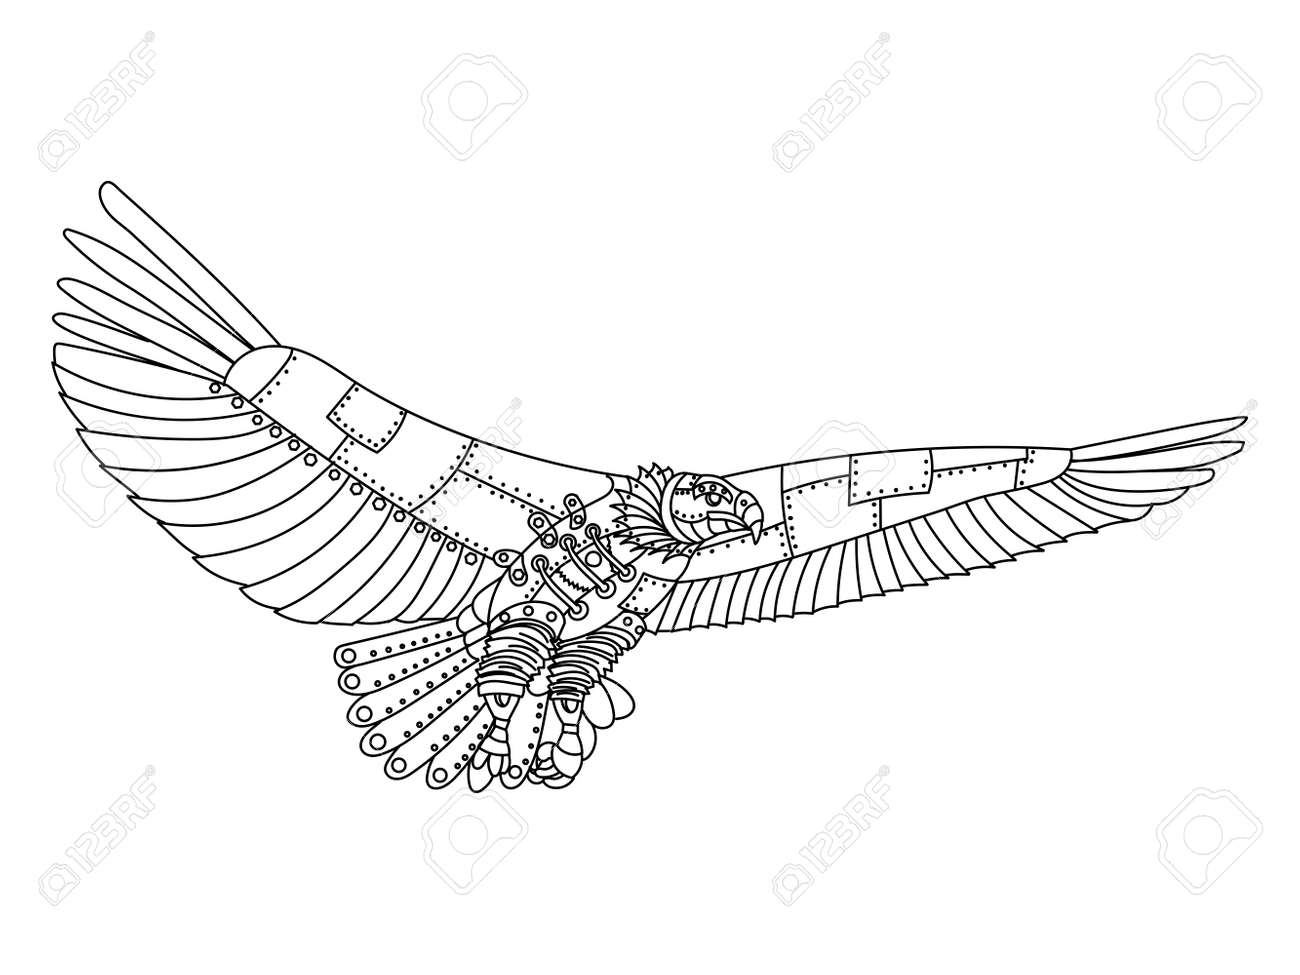 ste unk style eagle mechanical bird animal coloring book  ste unk style eagle mechanical bird animal coloring book for adult vector illustration stock